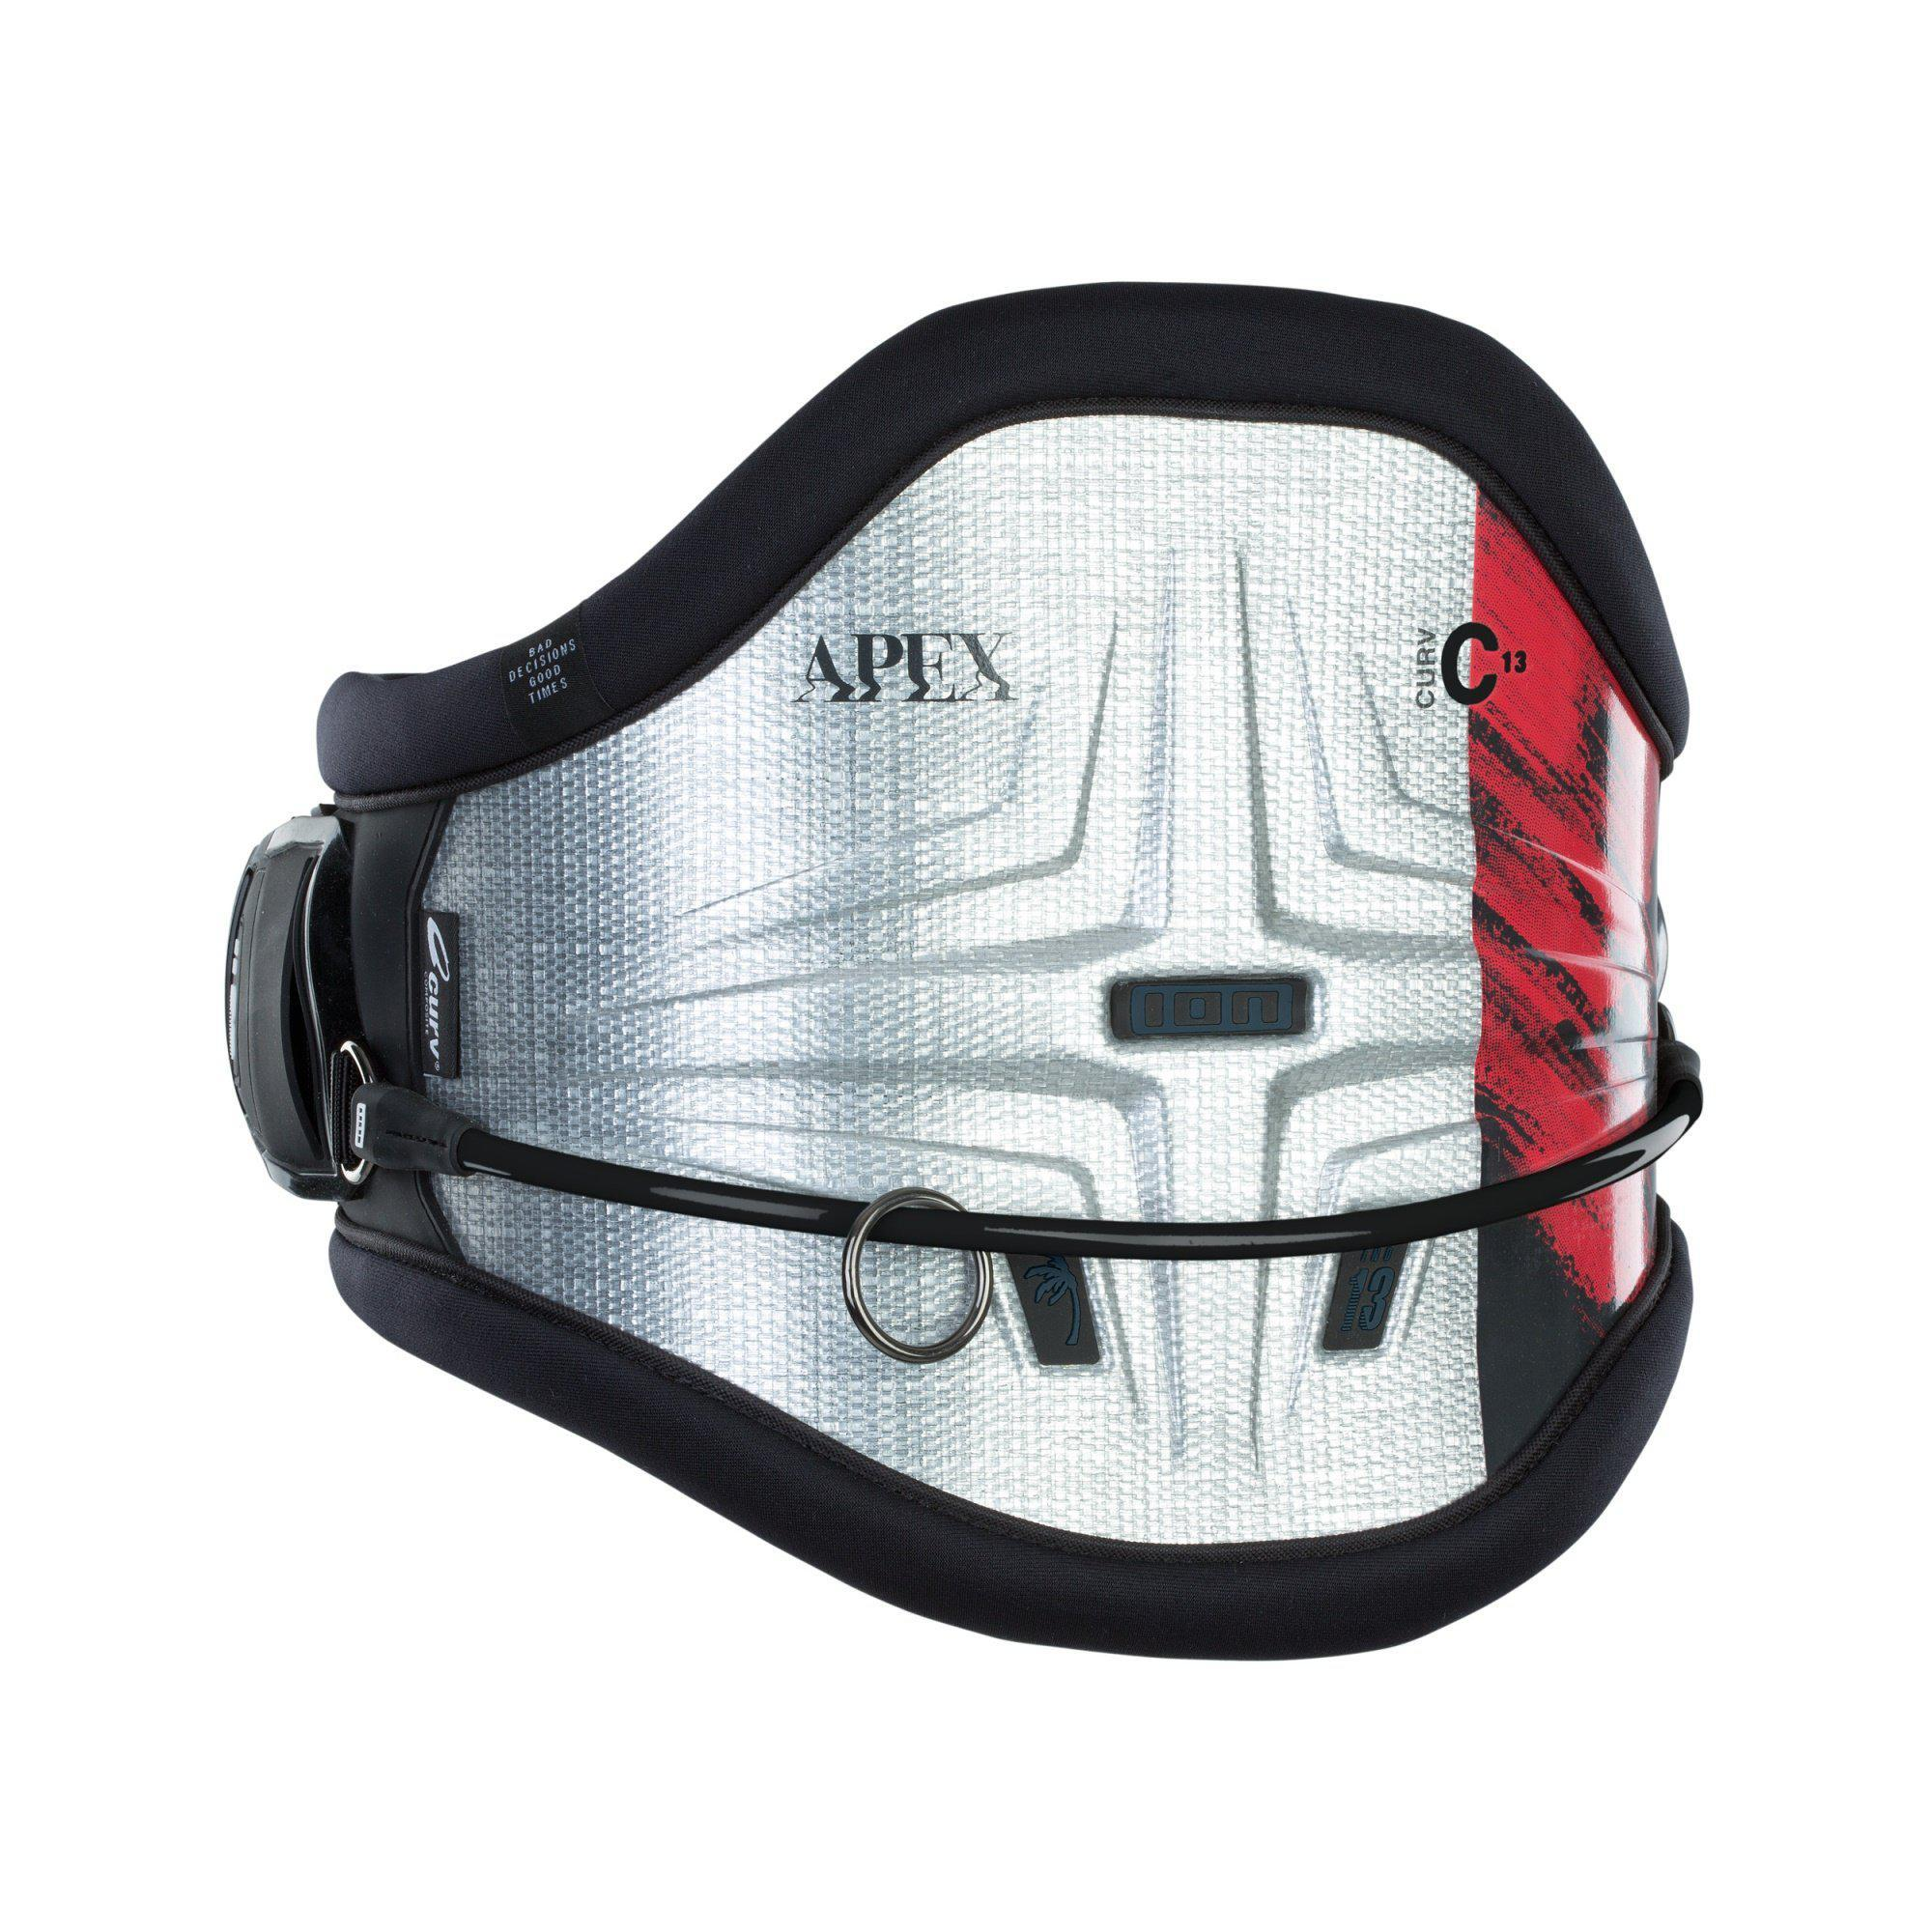 ION Apex Curv 13 Kiteboarding Harness-Big Winds